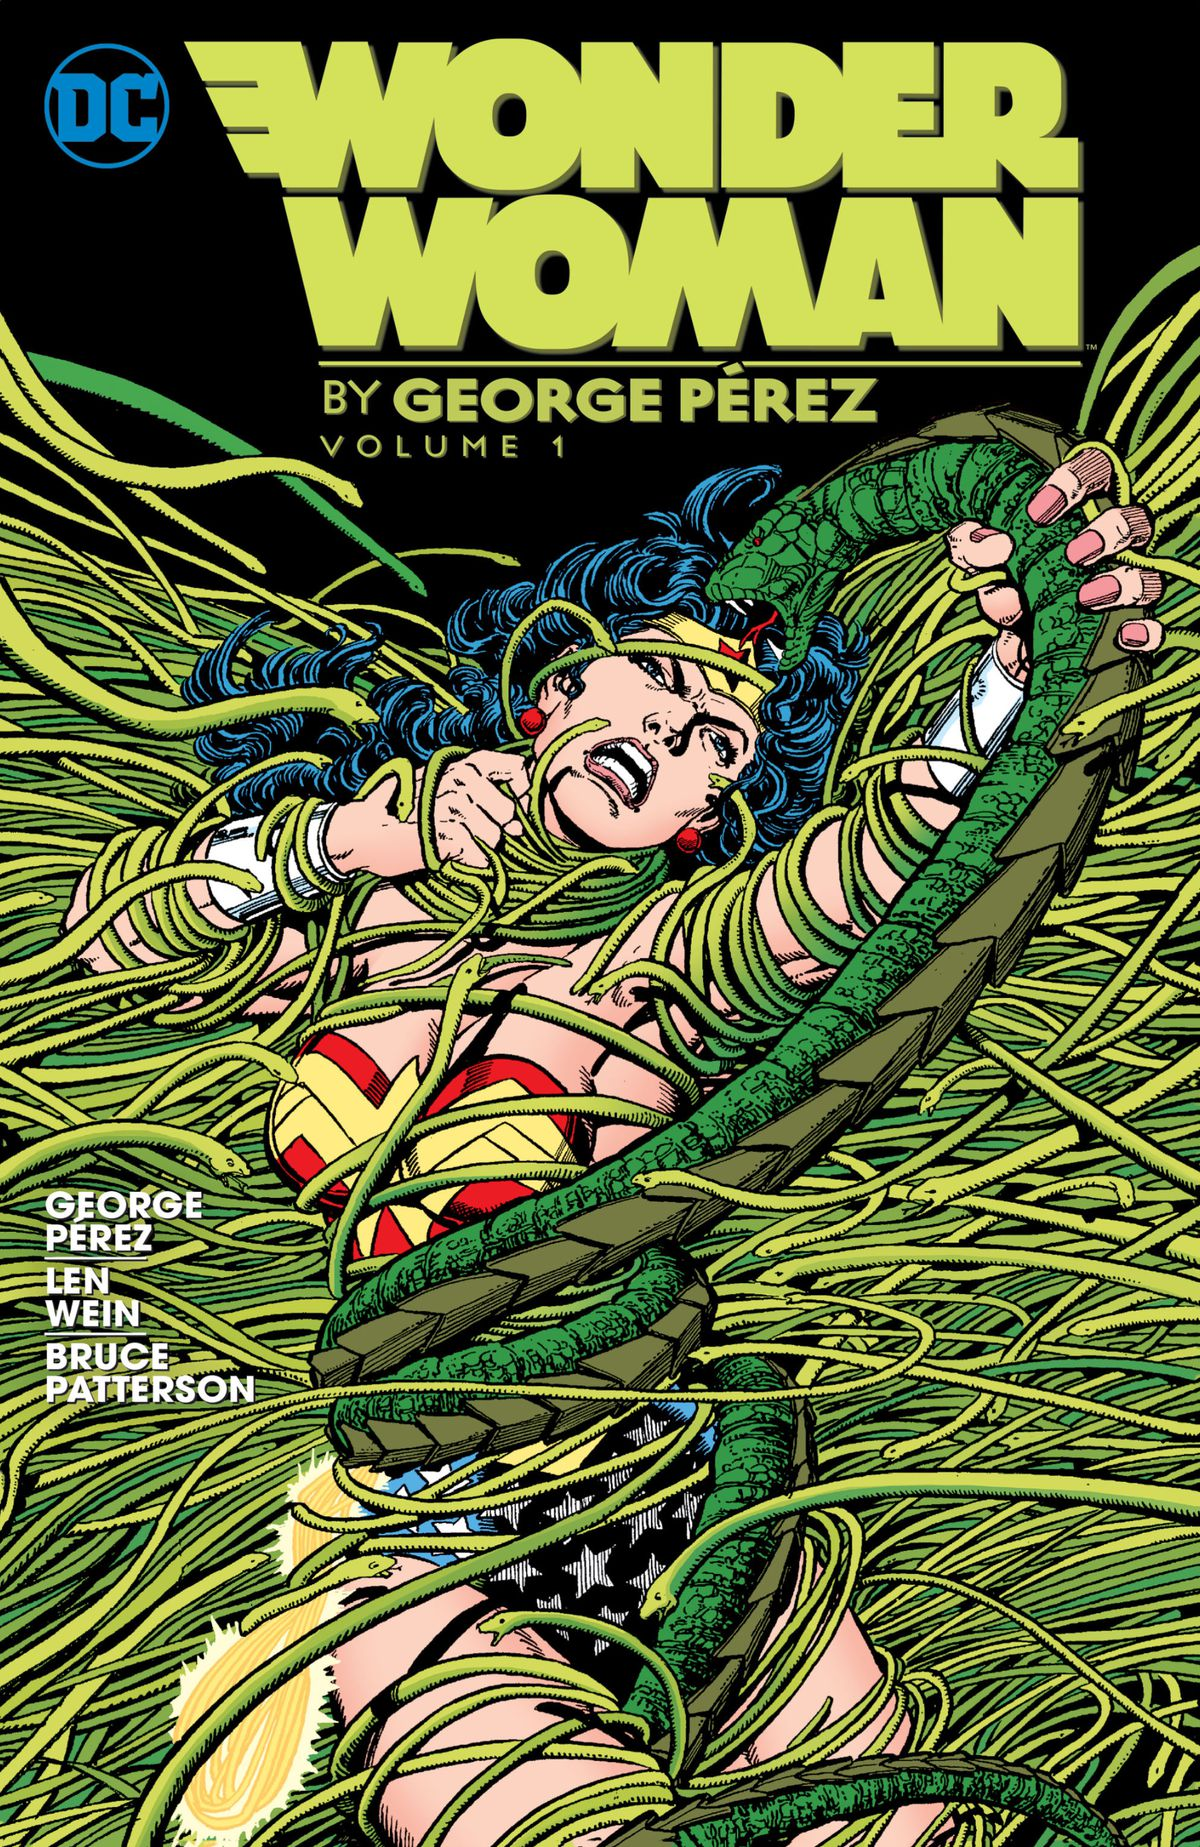 Wonder Woman struggles with hundreds of snakes threatening to engulf her in their coils on the cover of Wonder Woman by George Pérez, DC Comics.